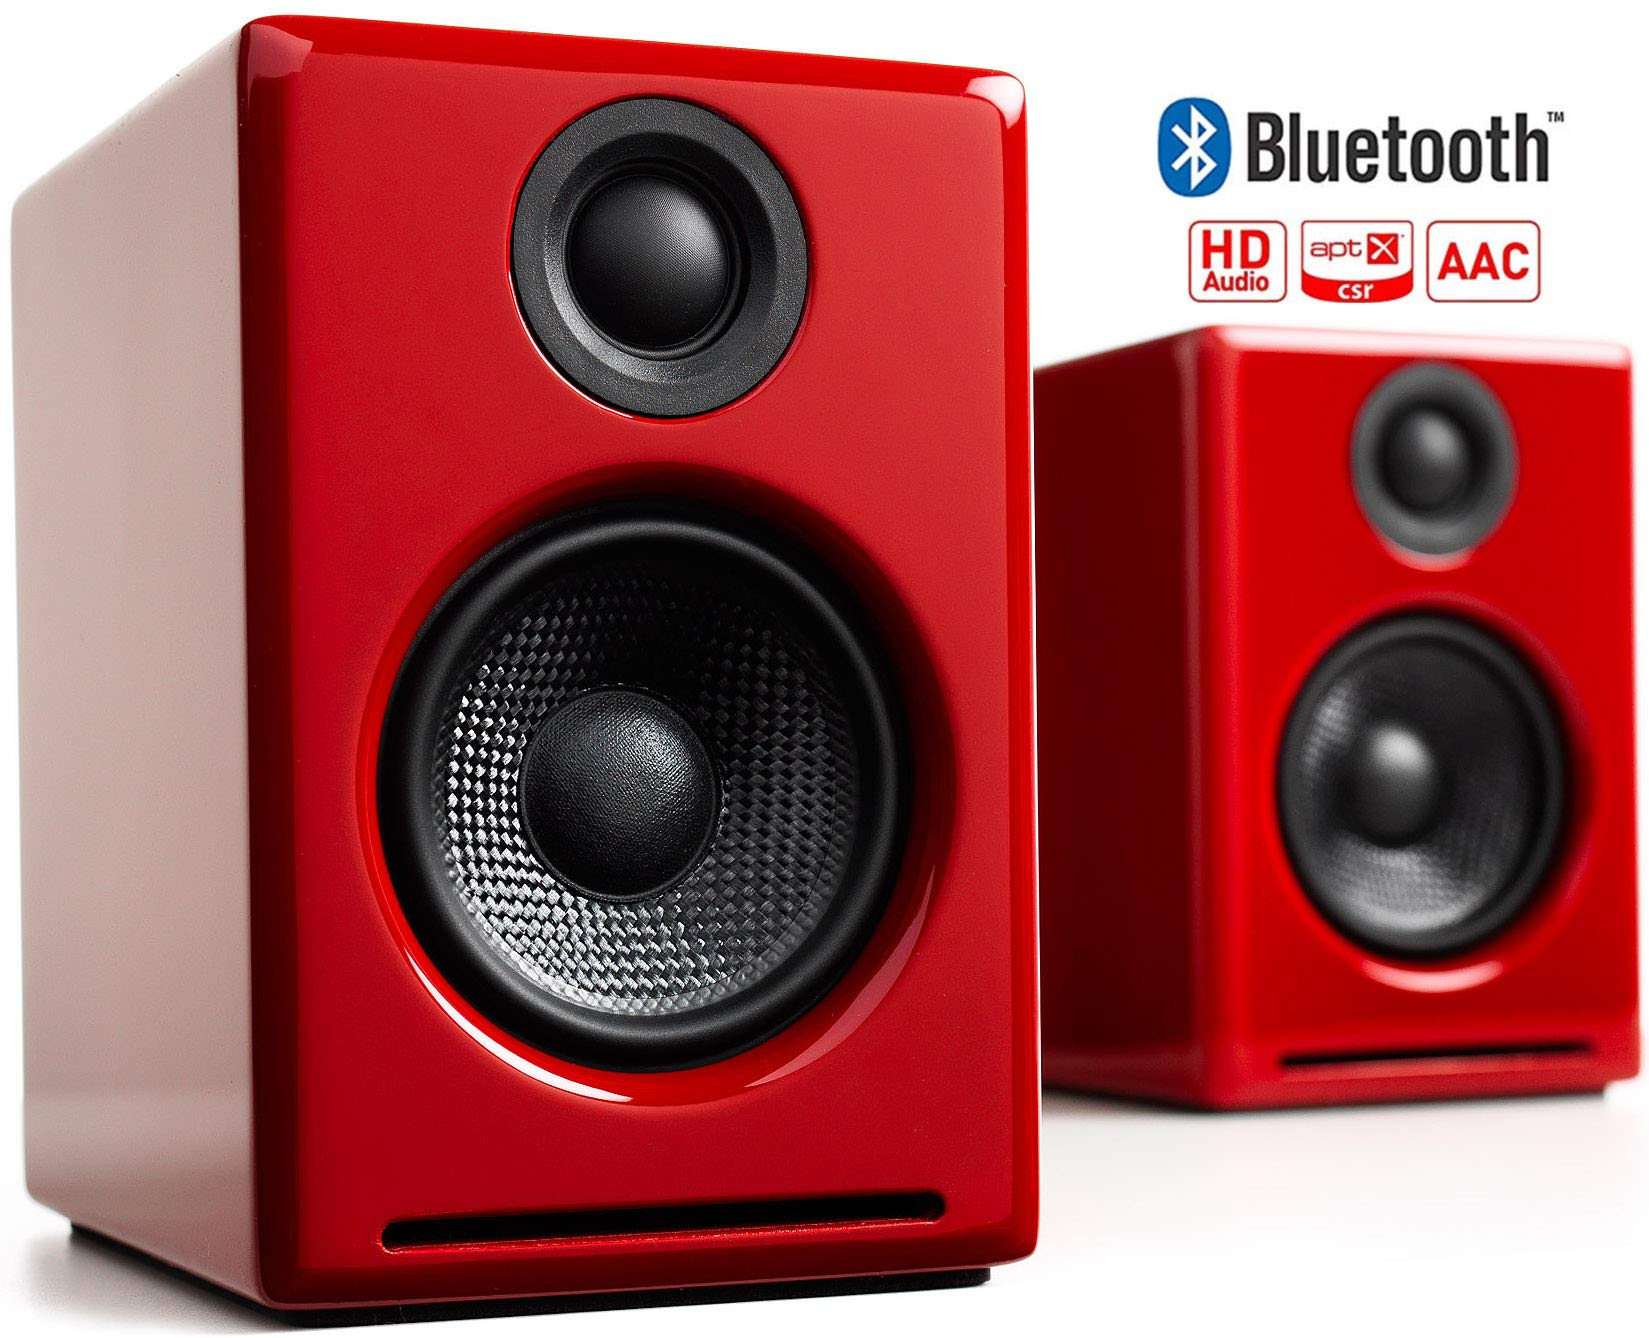 Audioengine A2+ Wireless 60W Powered Desktop Speakers | Built-in 24Bit DAC & Amplifier | Bluetooth aptX Codec, Direct USB Connection, 3.5mm and RCA Phono inputs | Cables Included